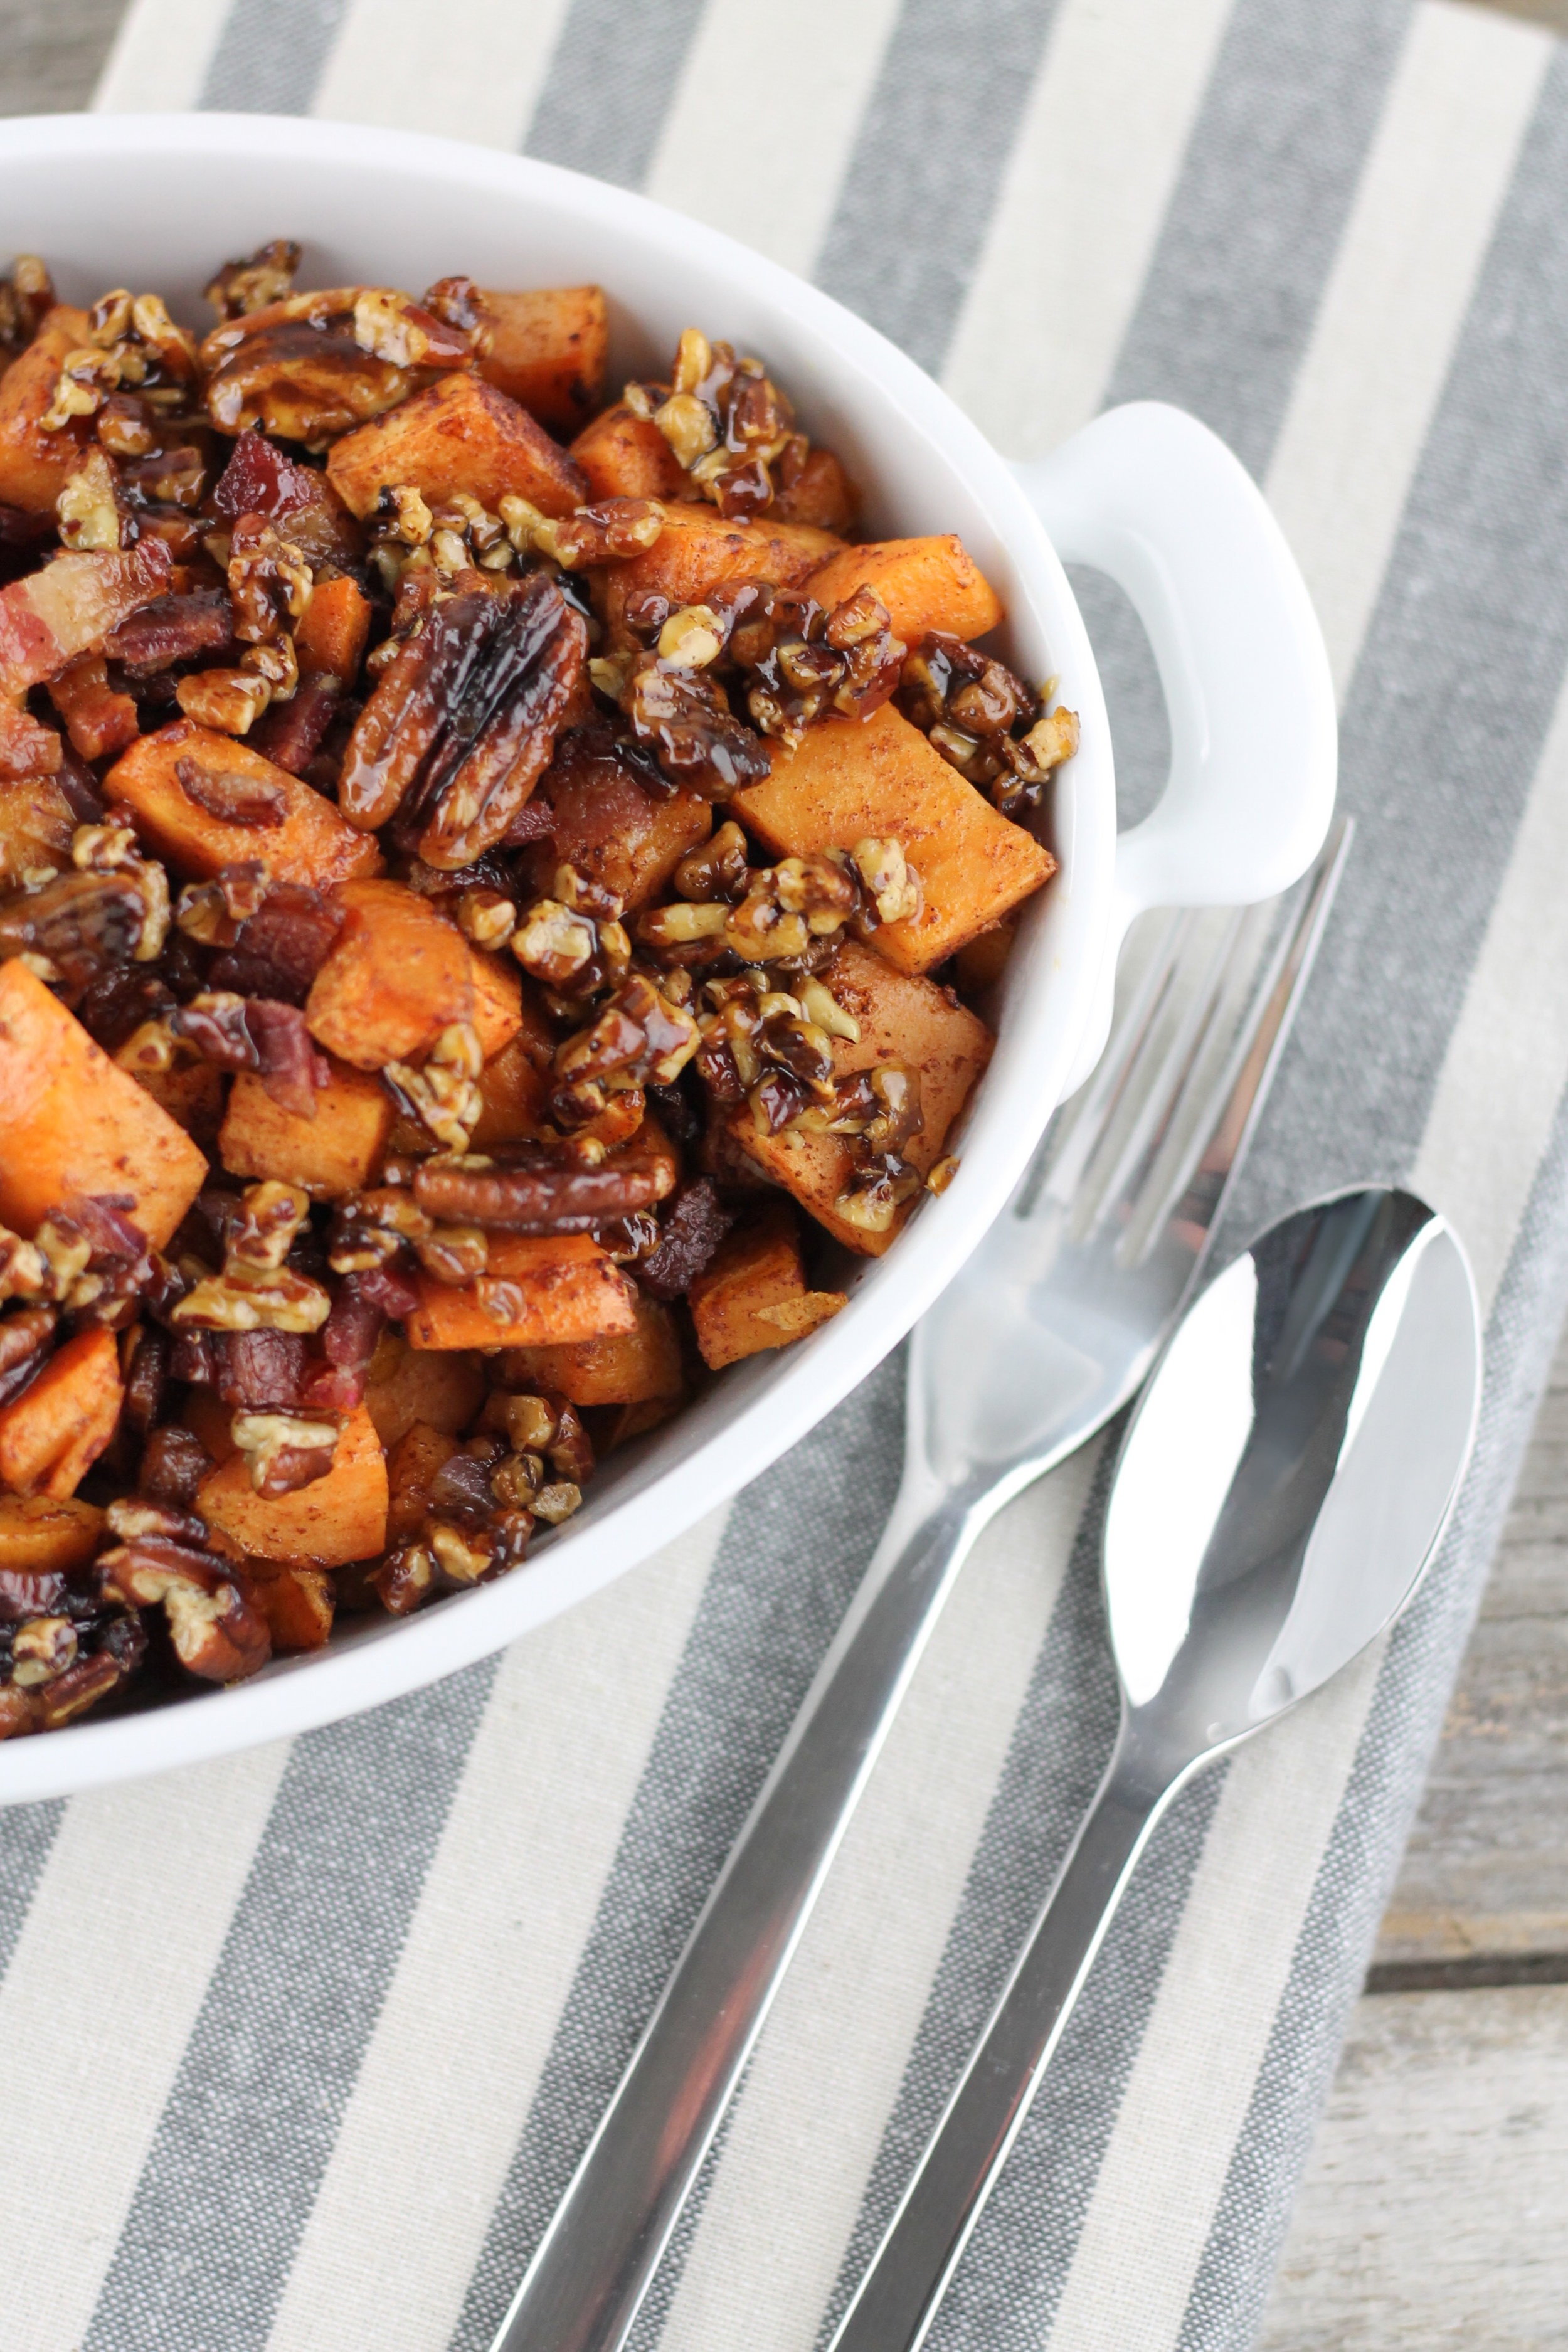 Paleo Thanksgiving, Sweet Potato Casserole, Healthy Thanksgiving Options, Clean Eating, Nutritious, Healthy Recipes,